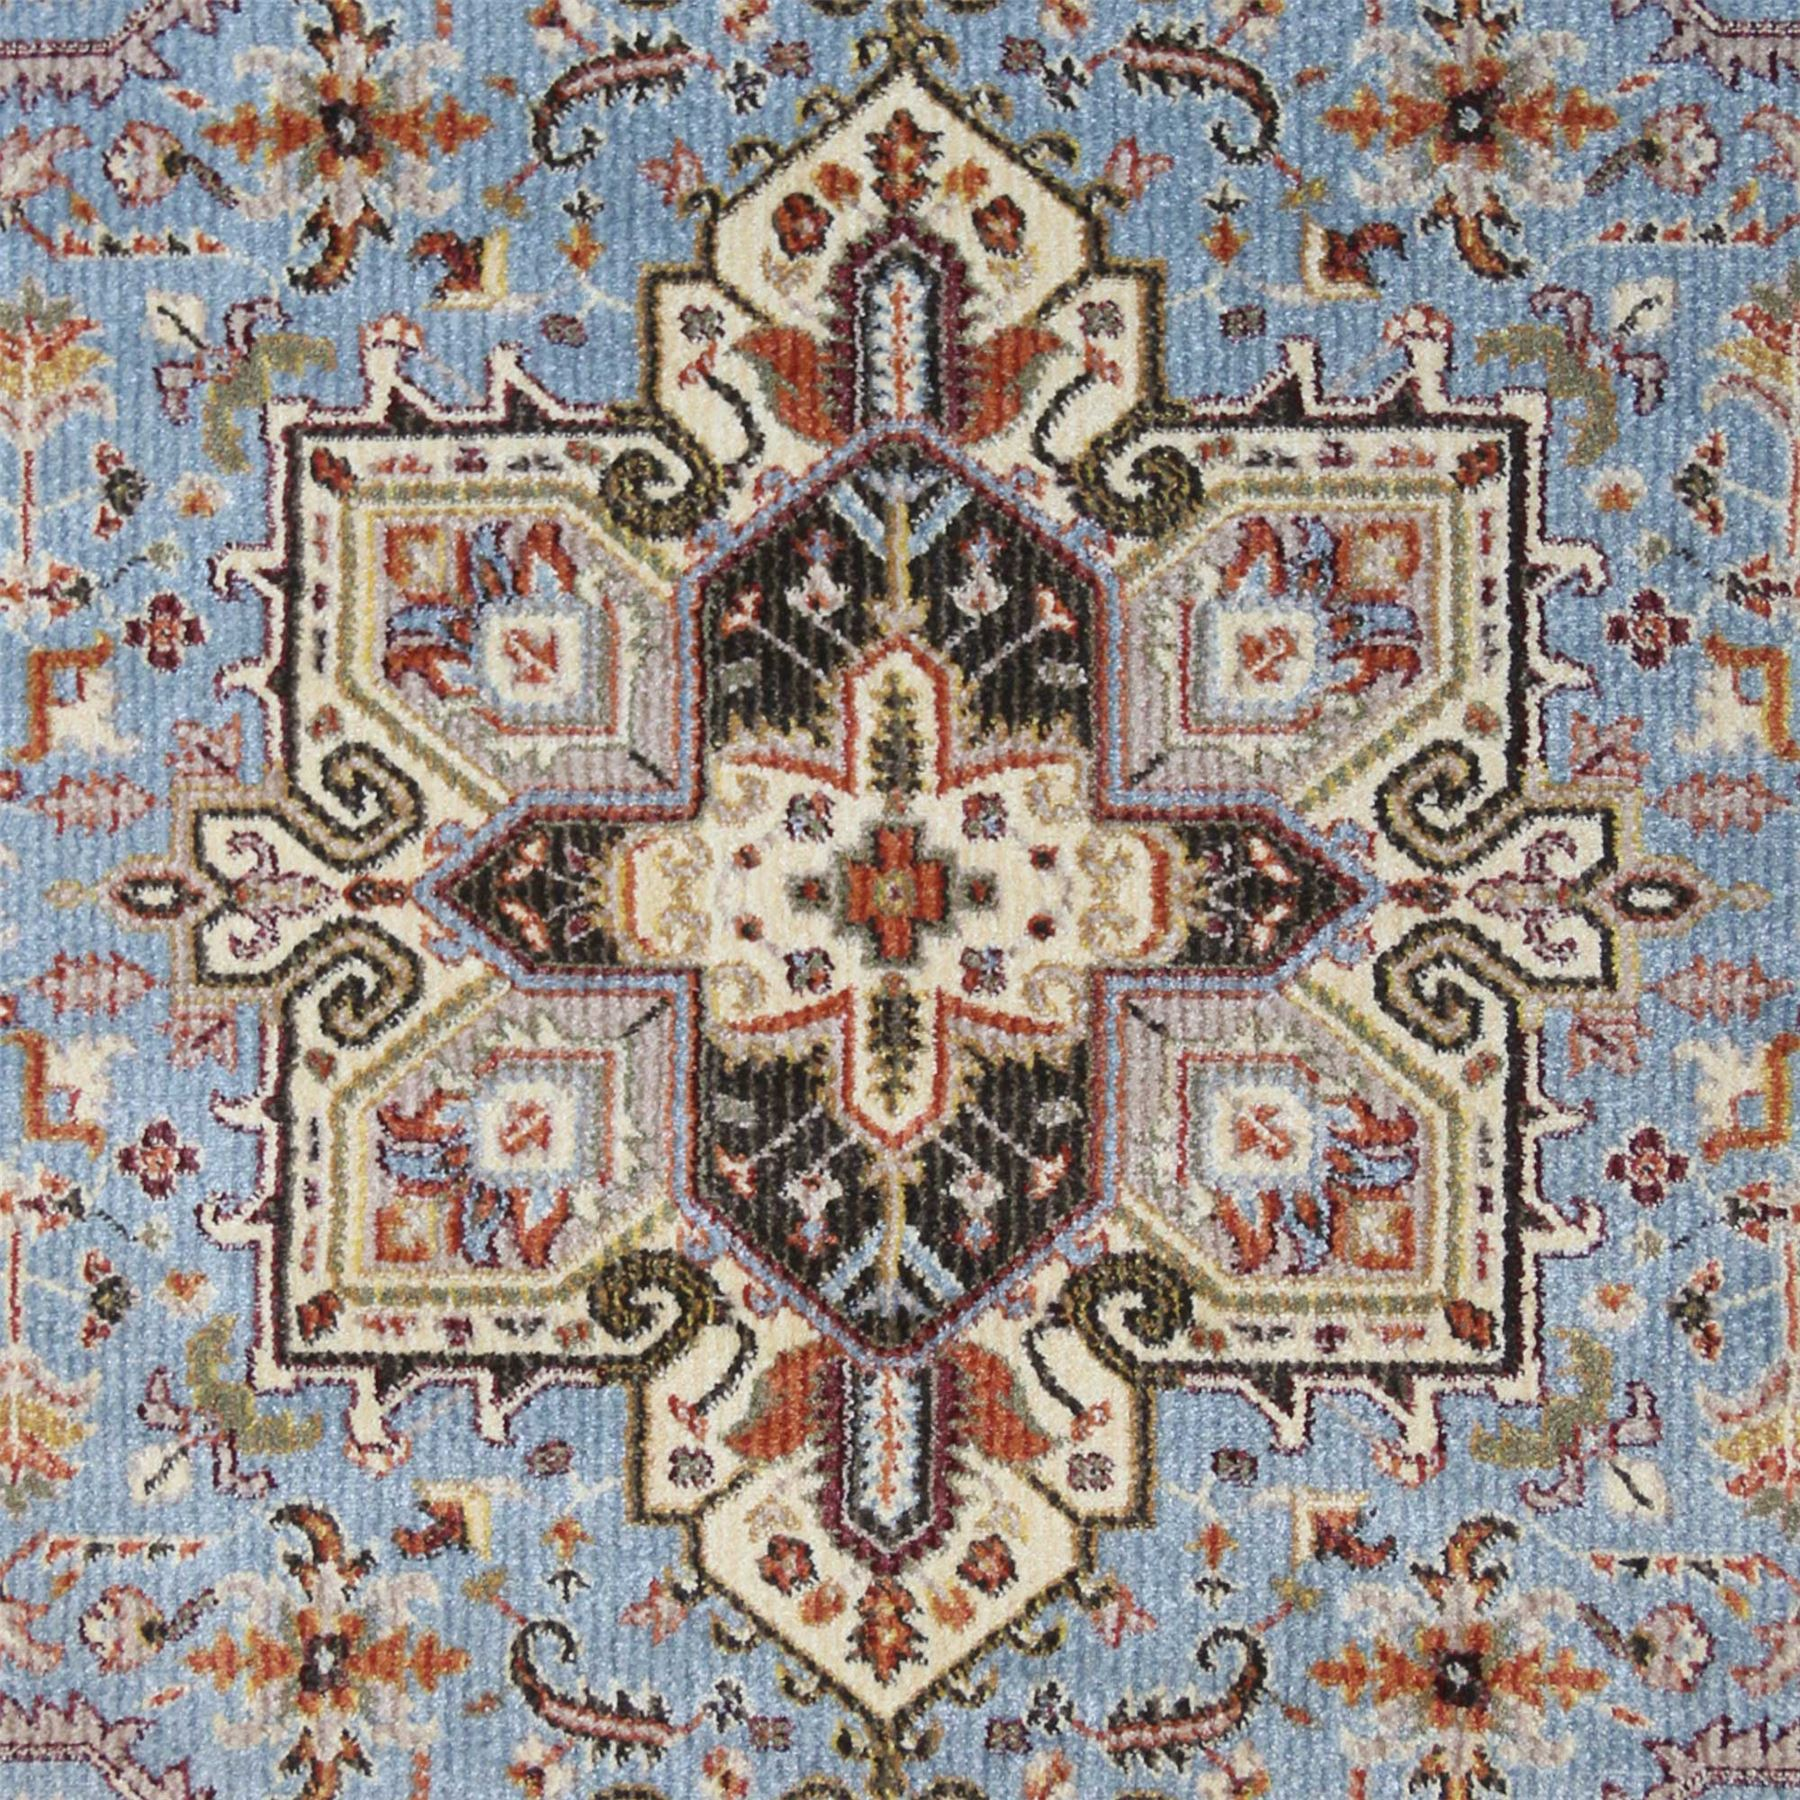 rot Blau Cream Cream Cream Traditional Rugs Vintage Area Rugs Floral Medallion Bedroom Rugs f02560